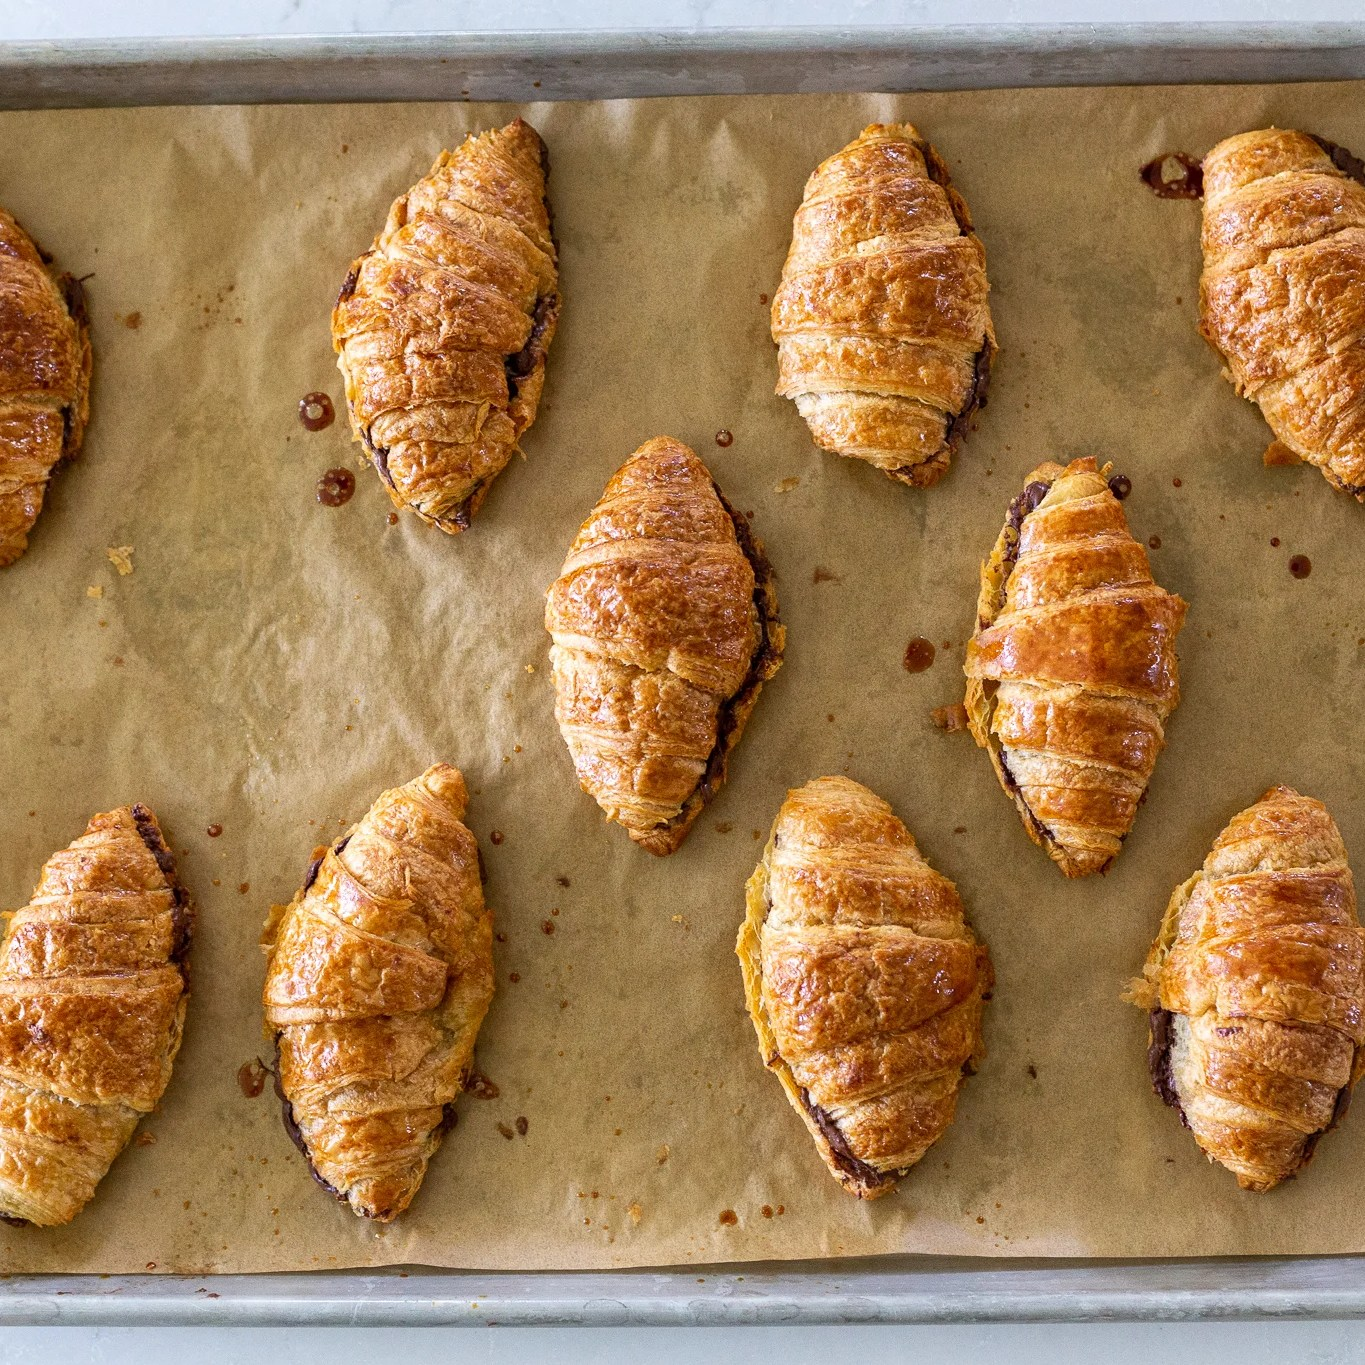 double baked croissants on a baking sheet